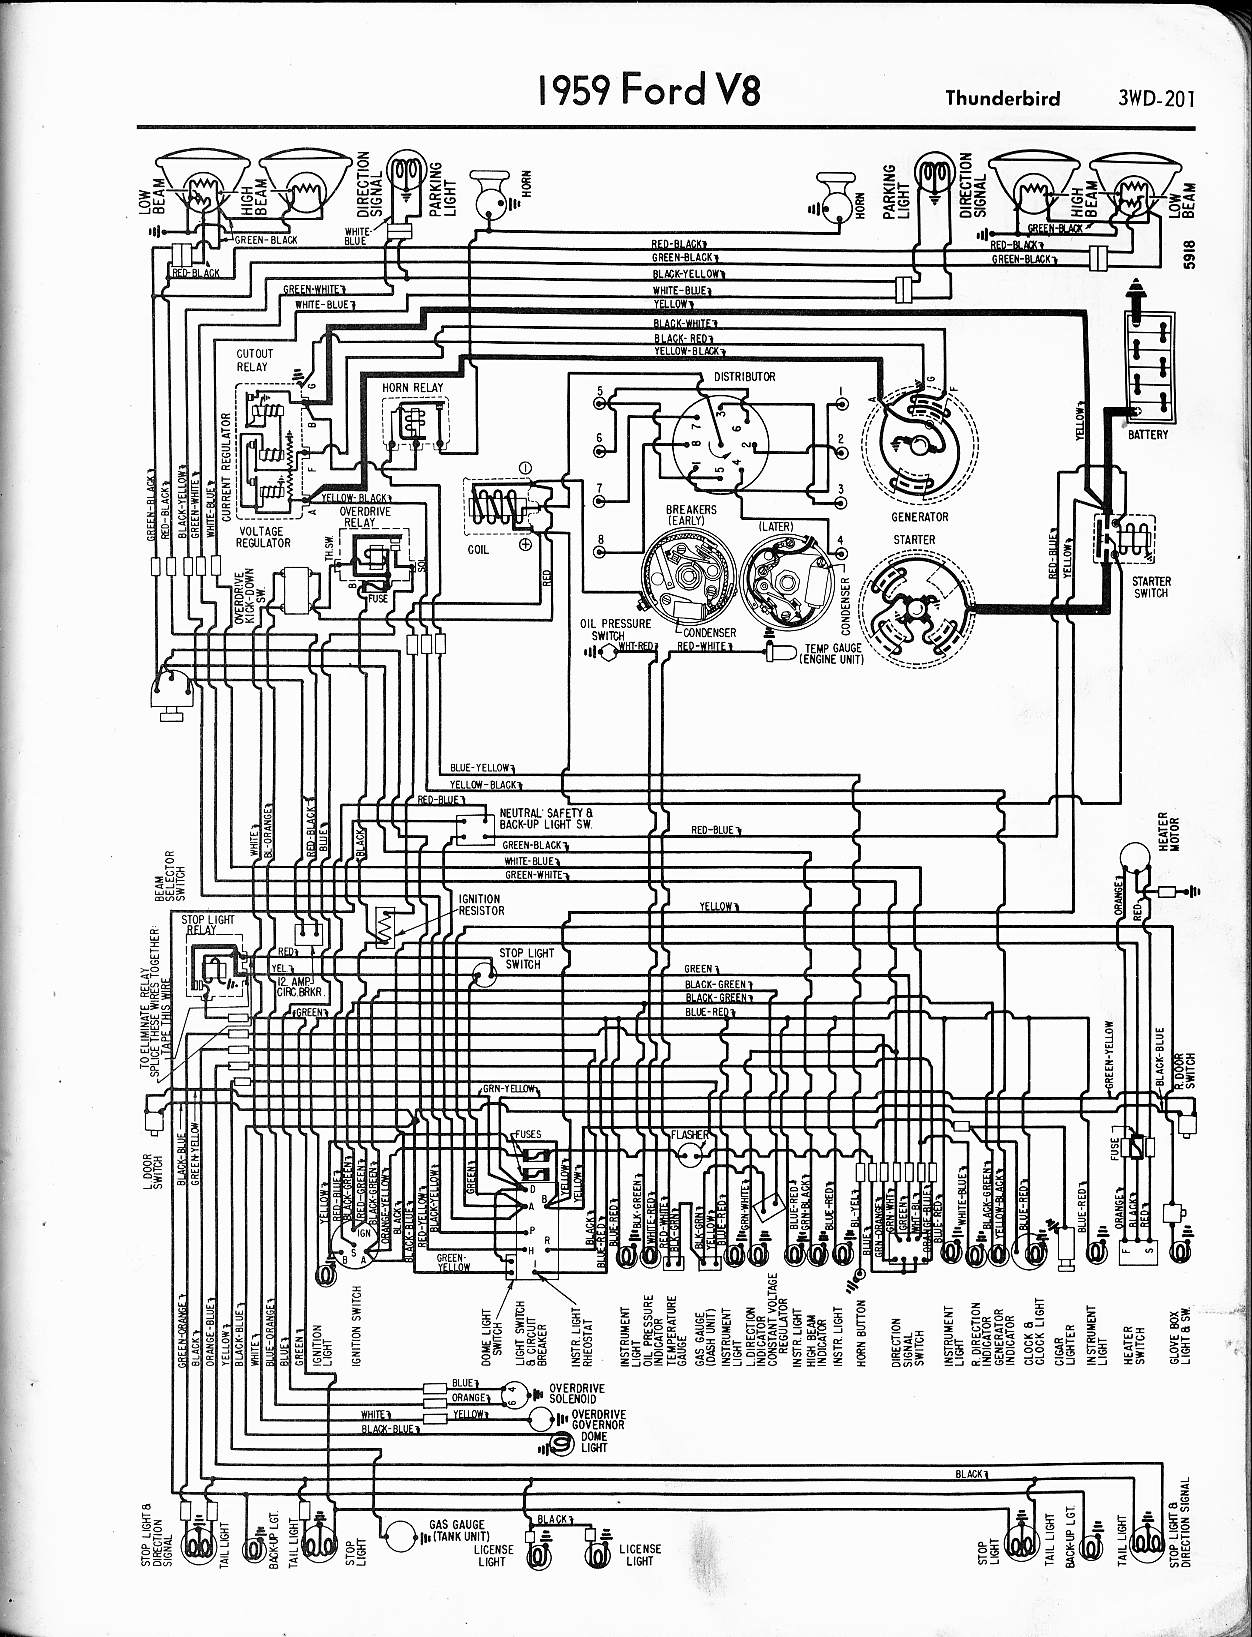 MWire5765 201 57 65 ford wiring diagrams ford truck wiring schematics at alyssarenee.co